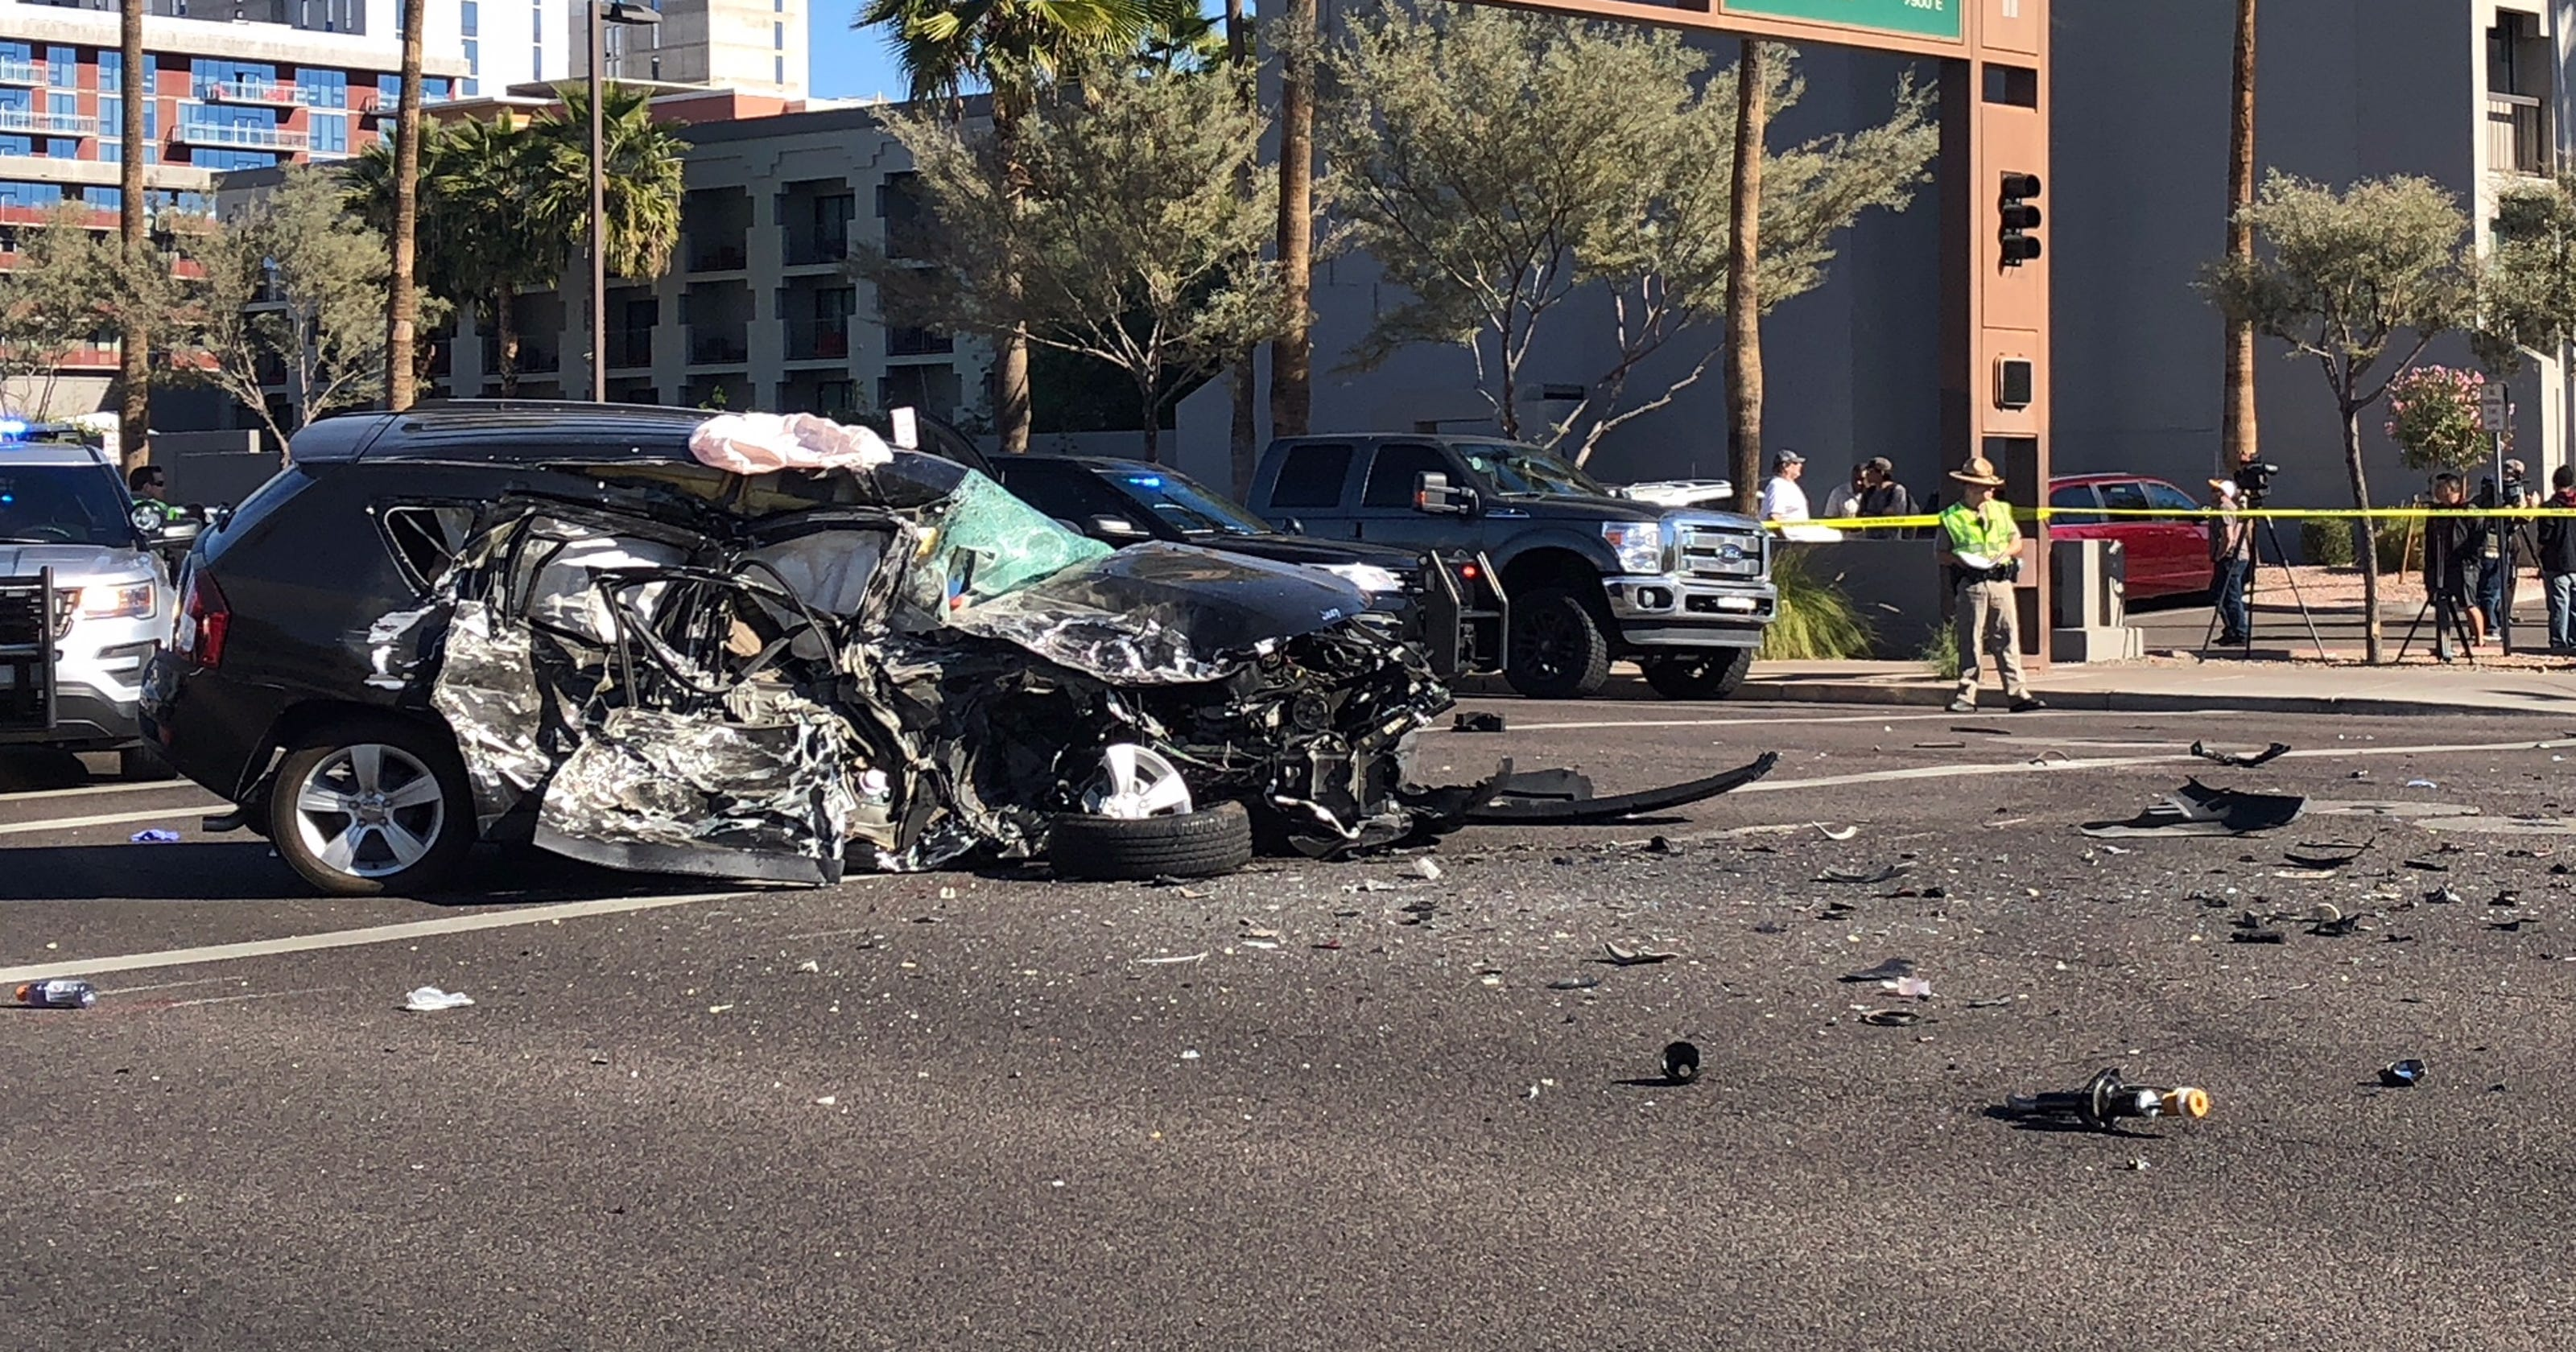 Phoenix-area police chase ends in violent, head-on crash in Tempe